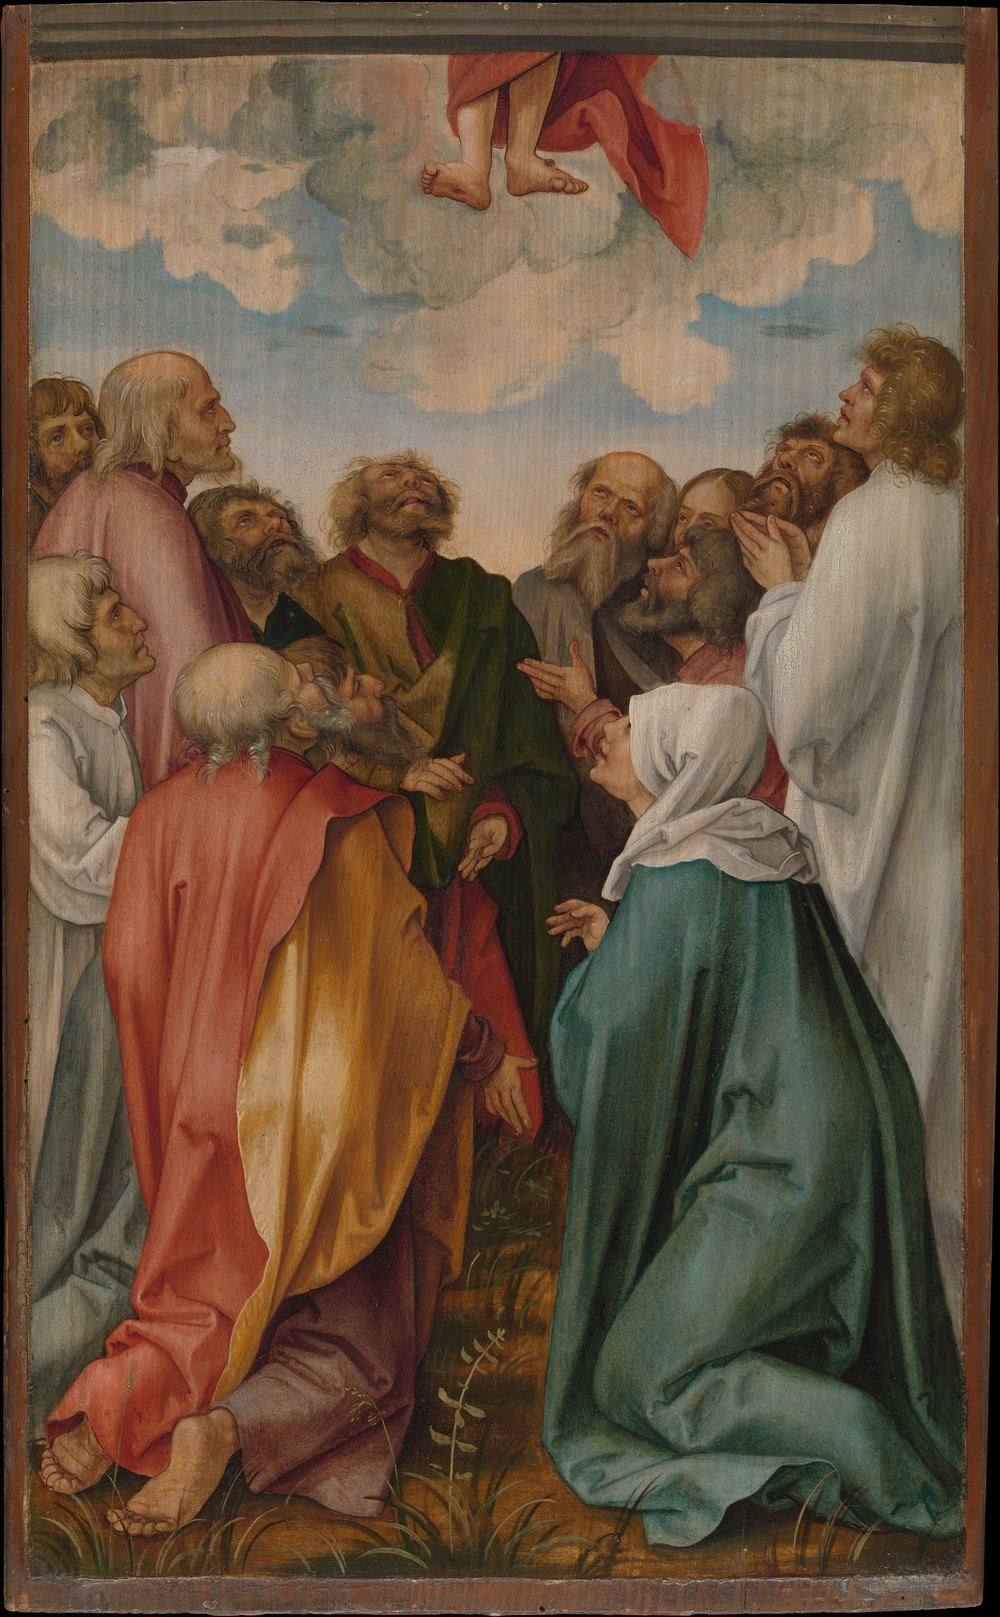 The Ascension of Christ, Hans Süss von Kulmbach, 1513. Metropolitan Museum of Art.